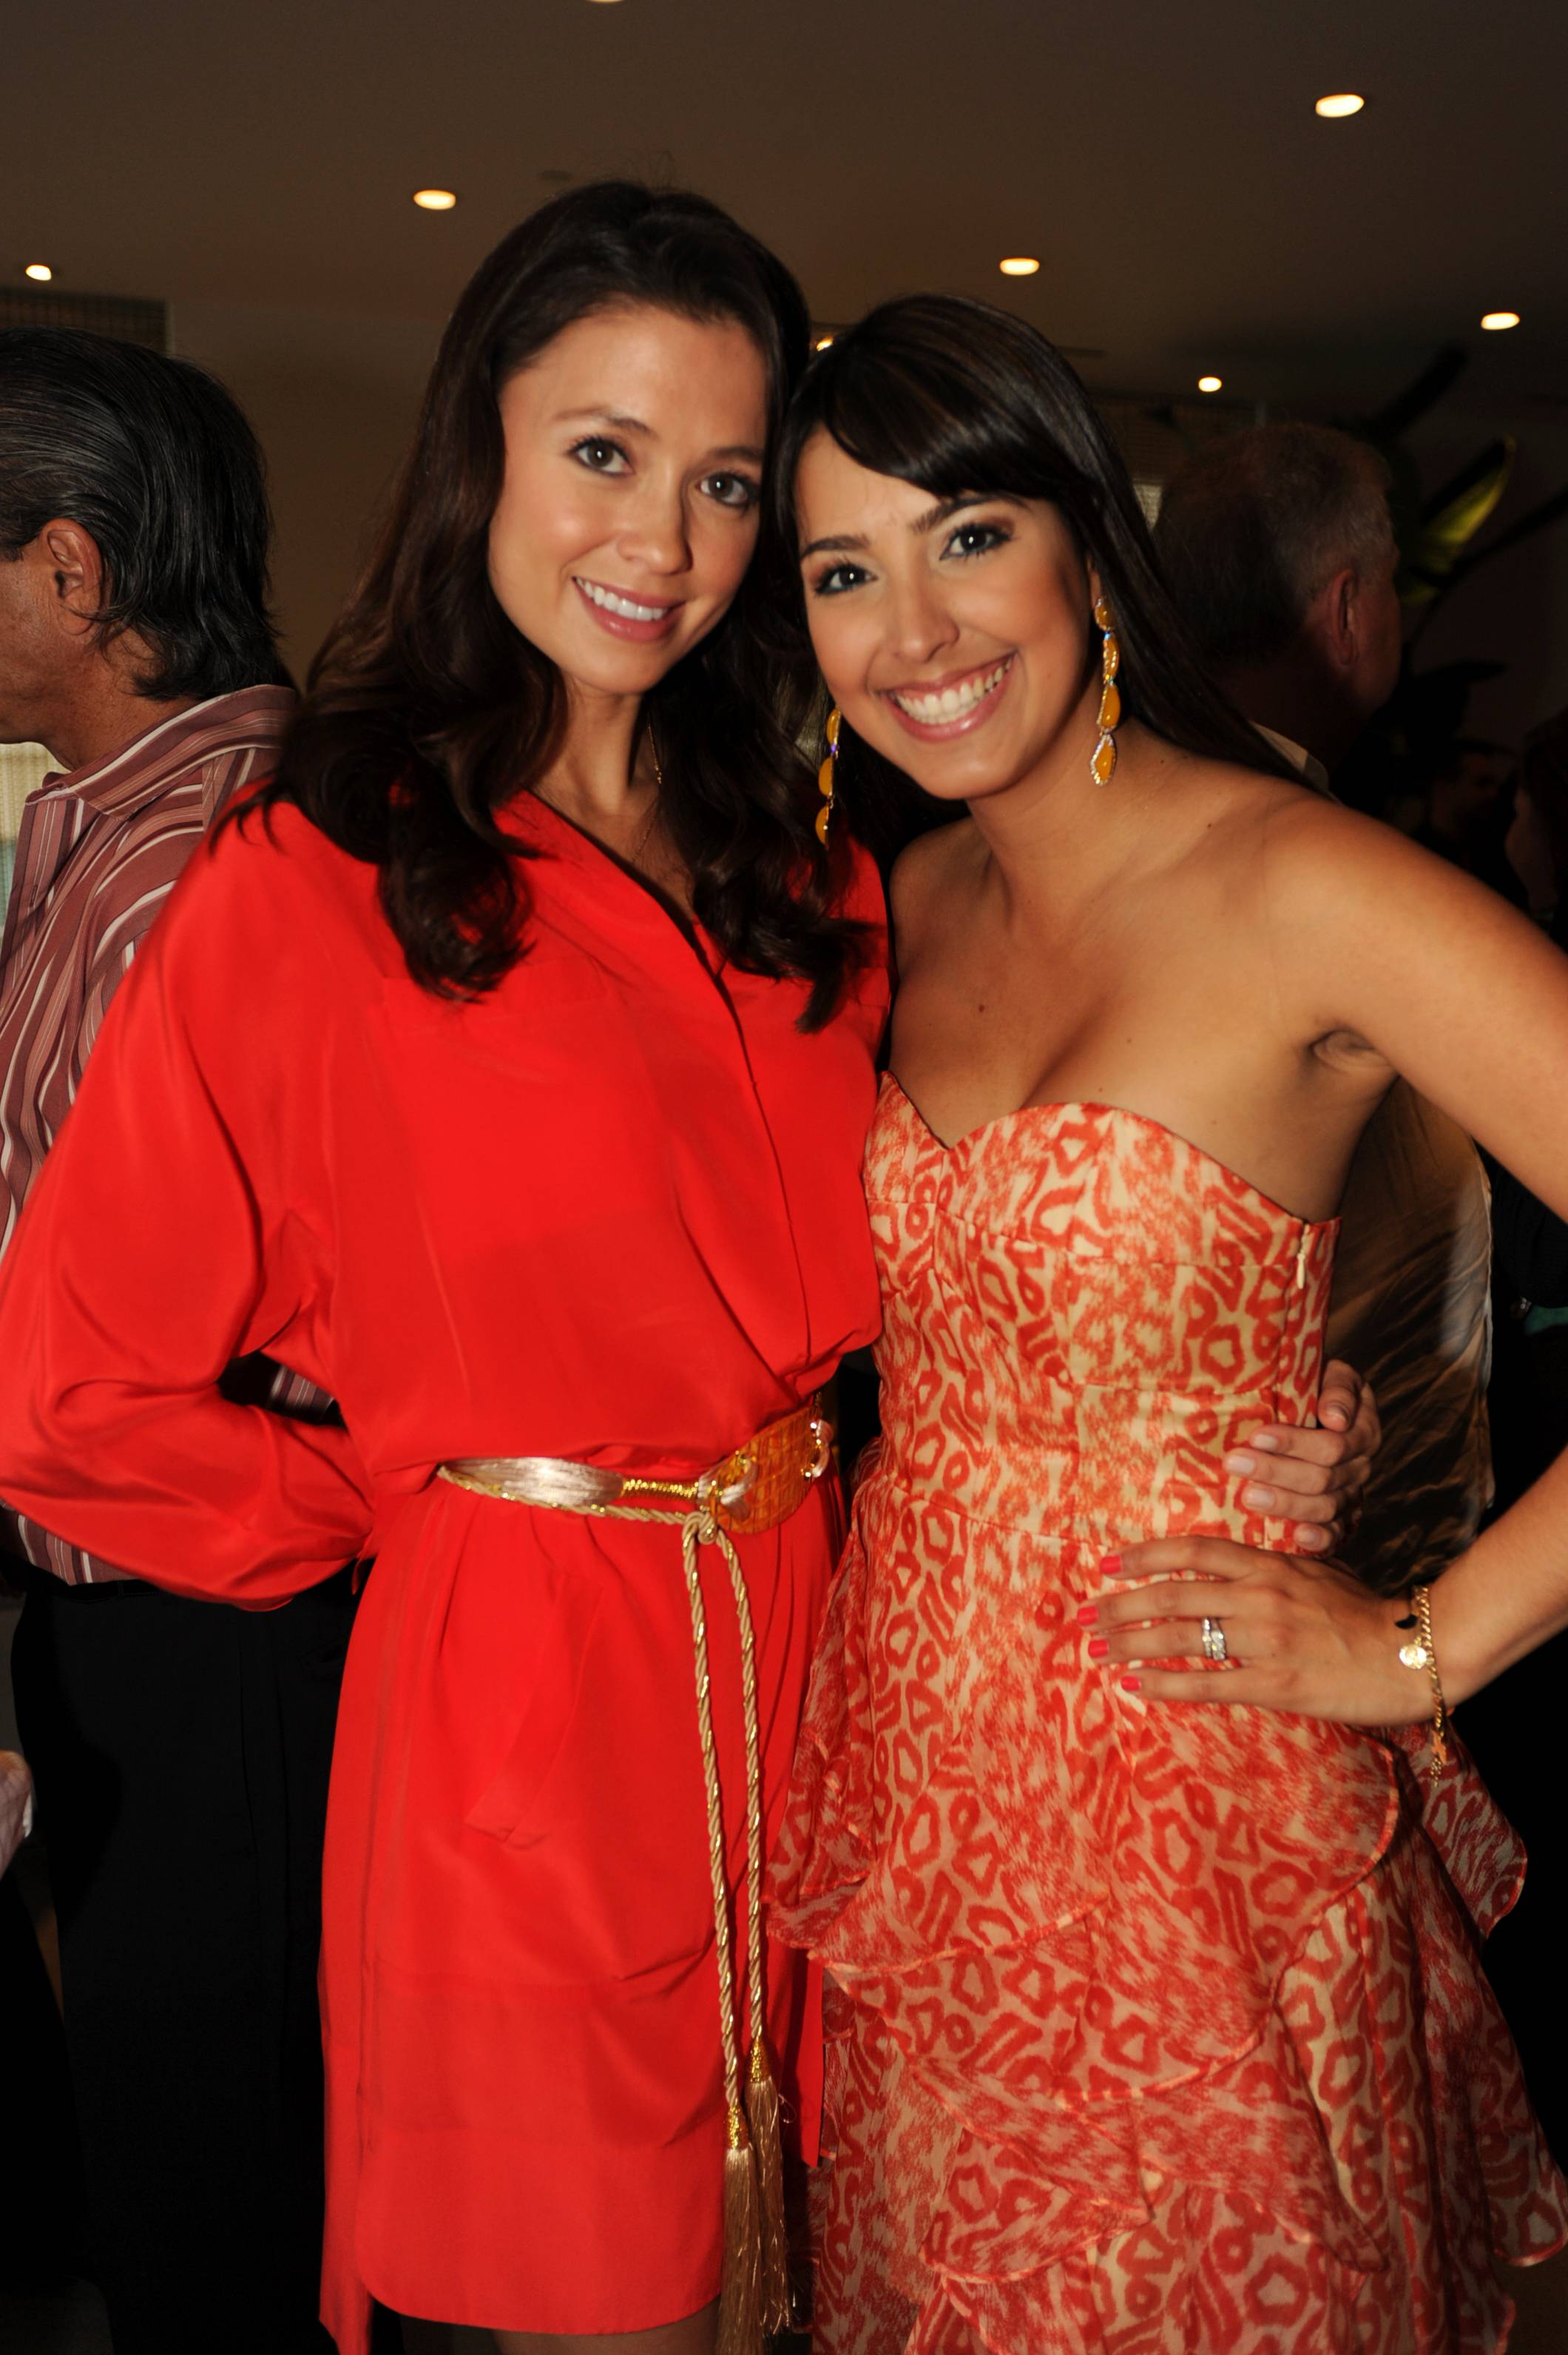 Annie de la Rosa and Alejandra Castillo at the Paramount Bay Grand Opening